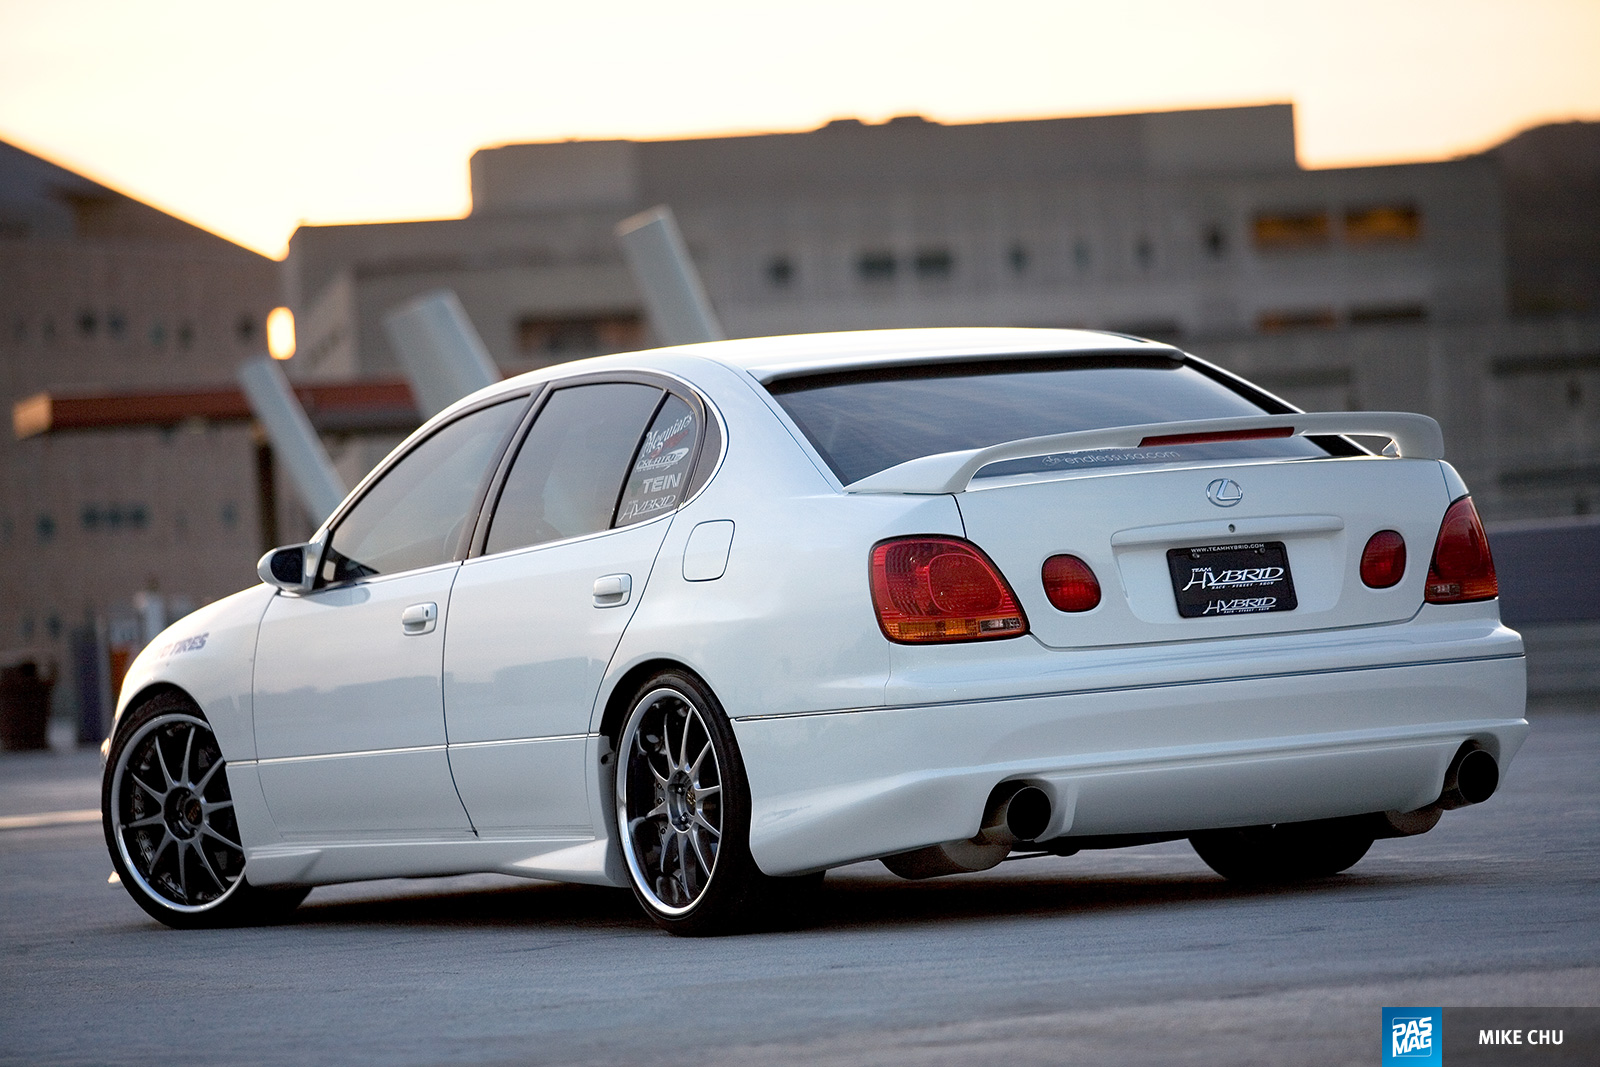 16 Kirby Wang 1998 Lexus GS300 Team Hybrid pasmag